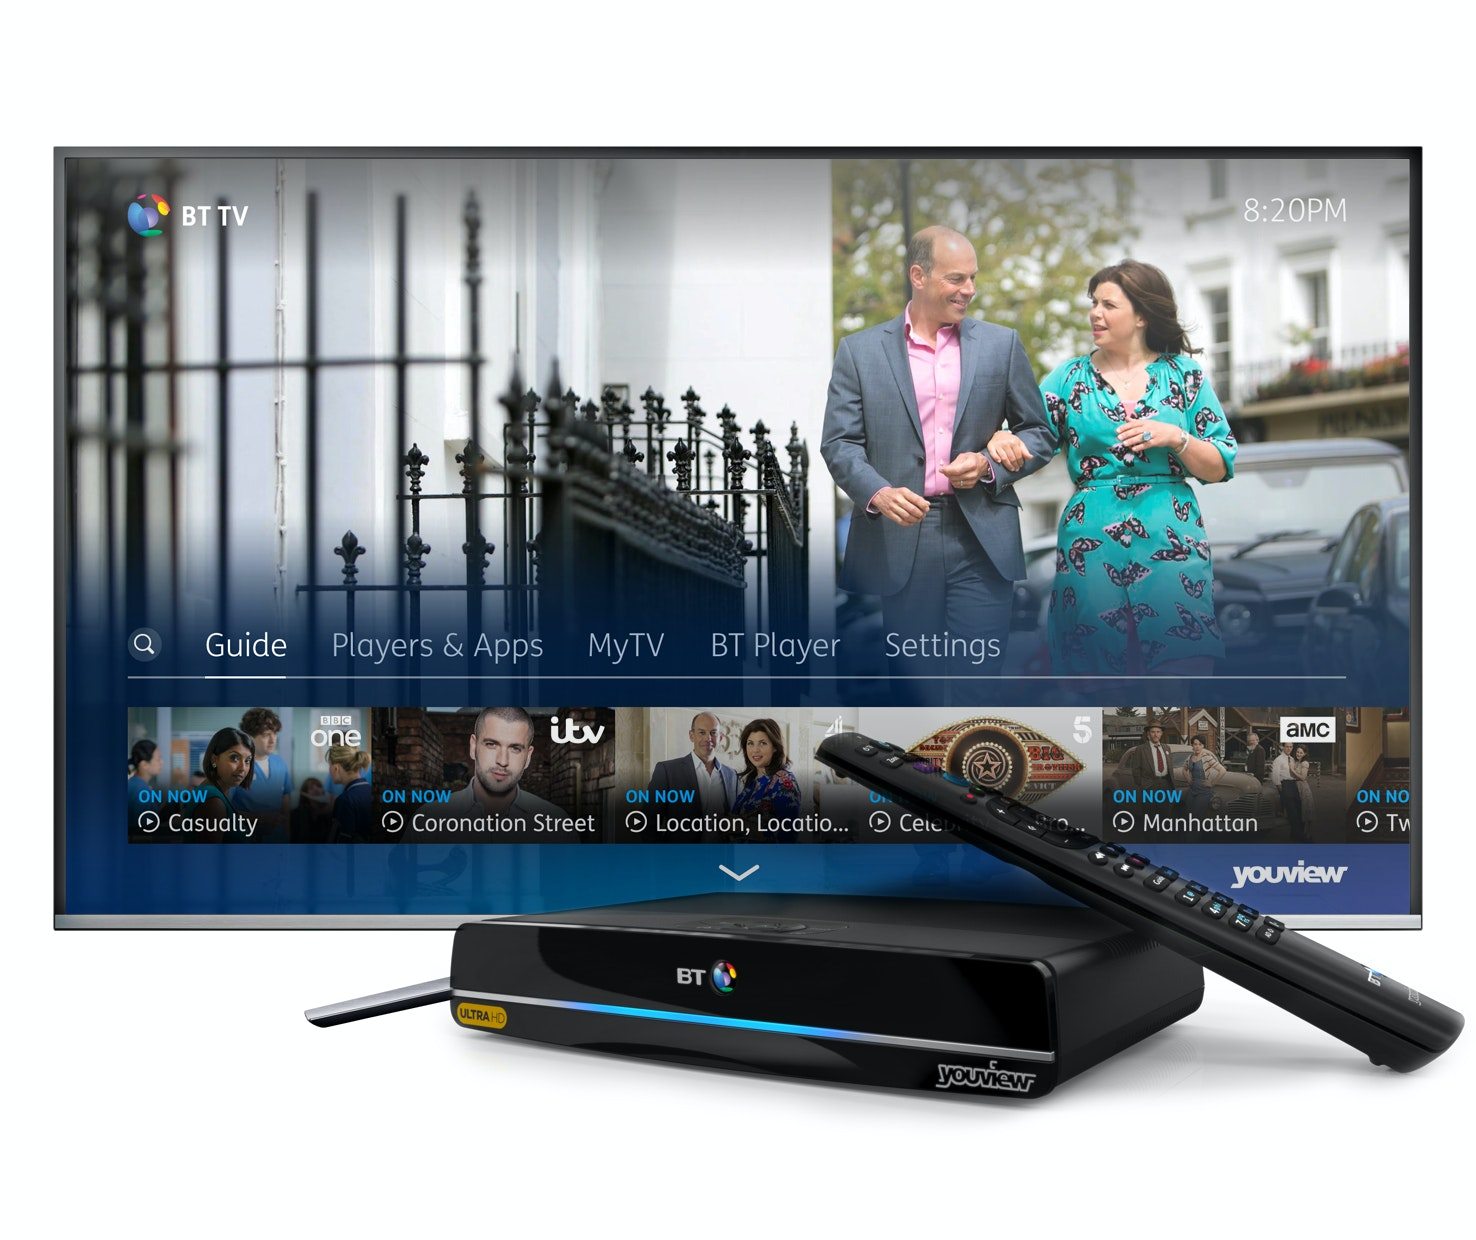 BT TV Ultra HD Box, 4K TV & a 12 month subscription to BT TV sweepstakes